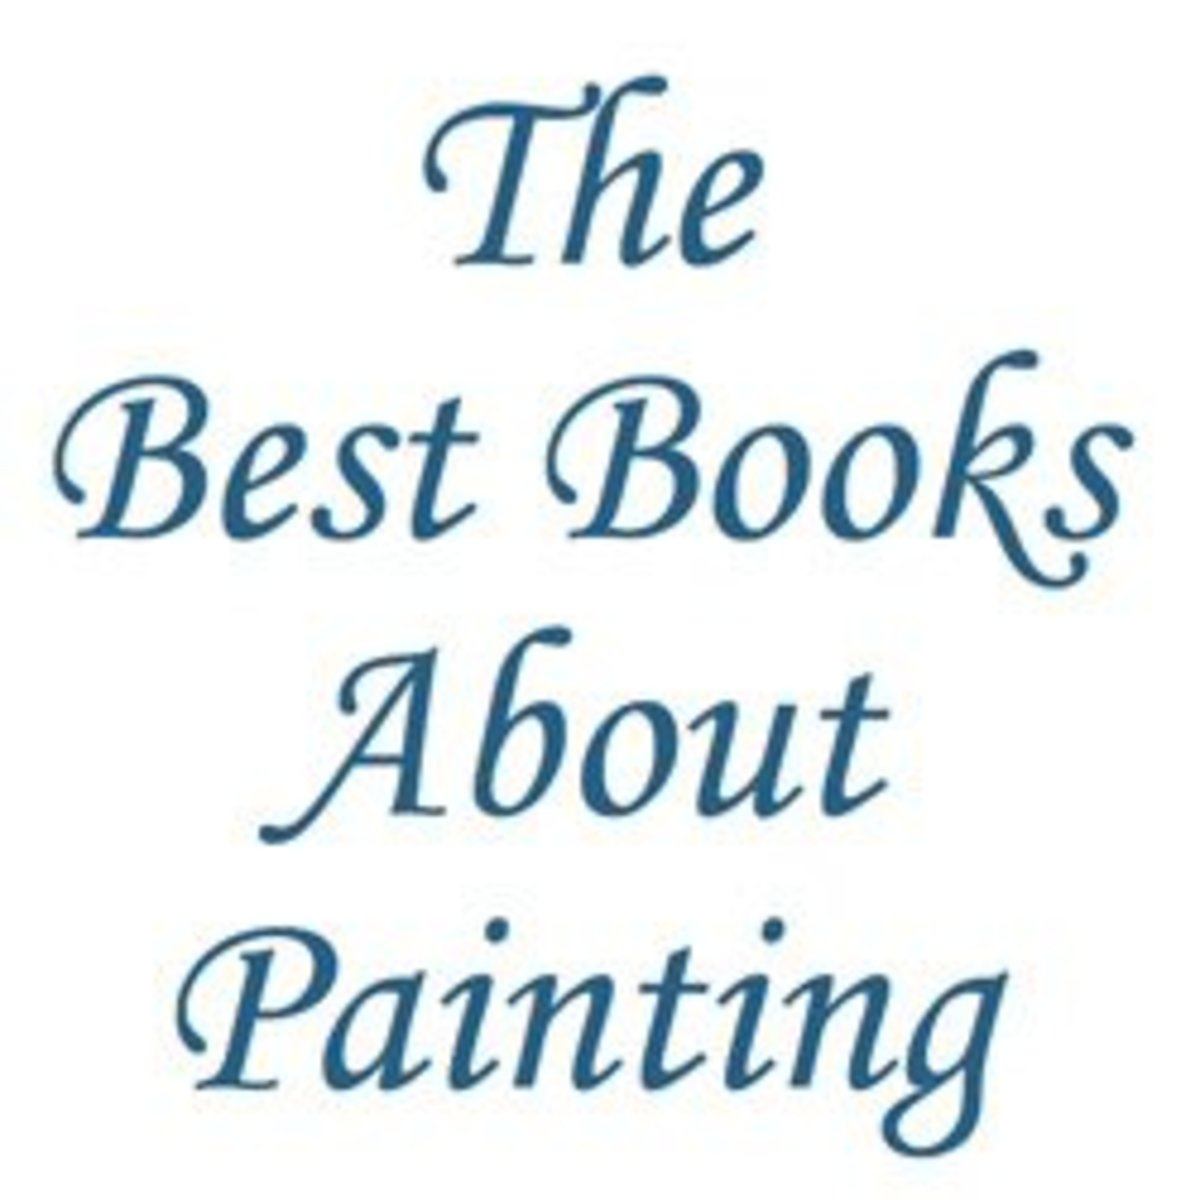 The Best Books about Painting